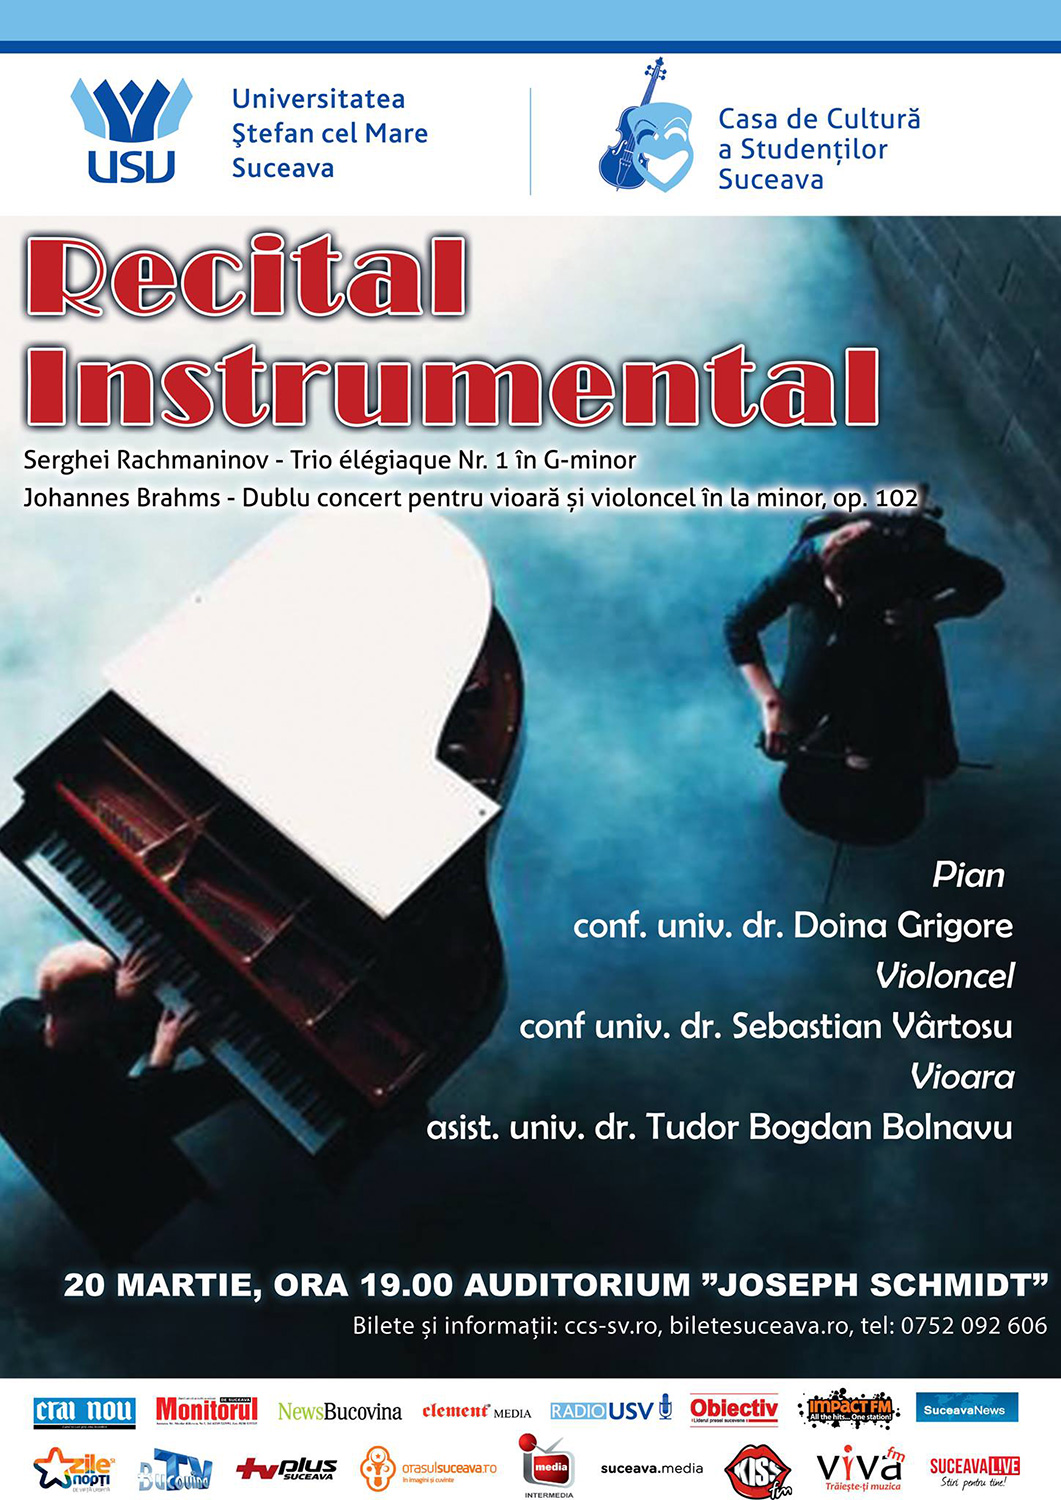 Recital intrumental